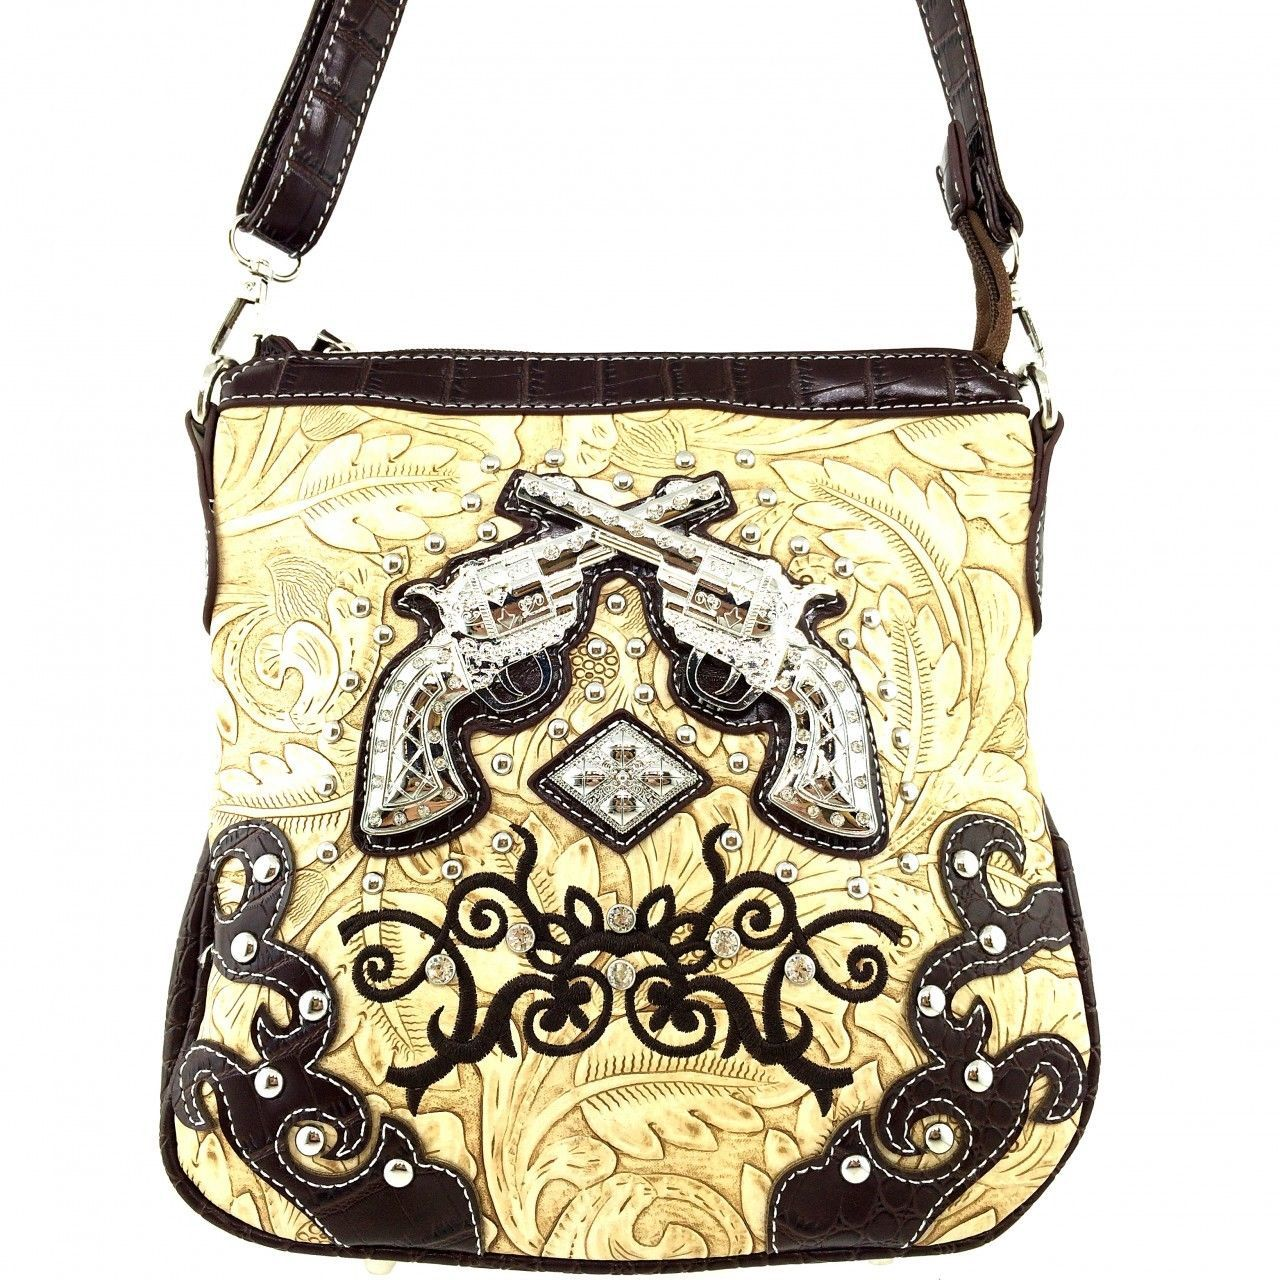 Embossed Western Rhinestone Pistols Cross Body Purse Messenger Bag Crocodile